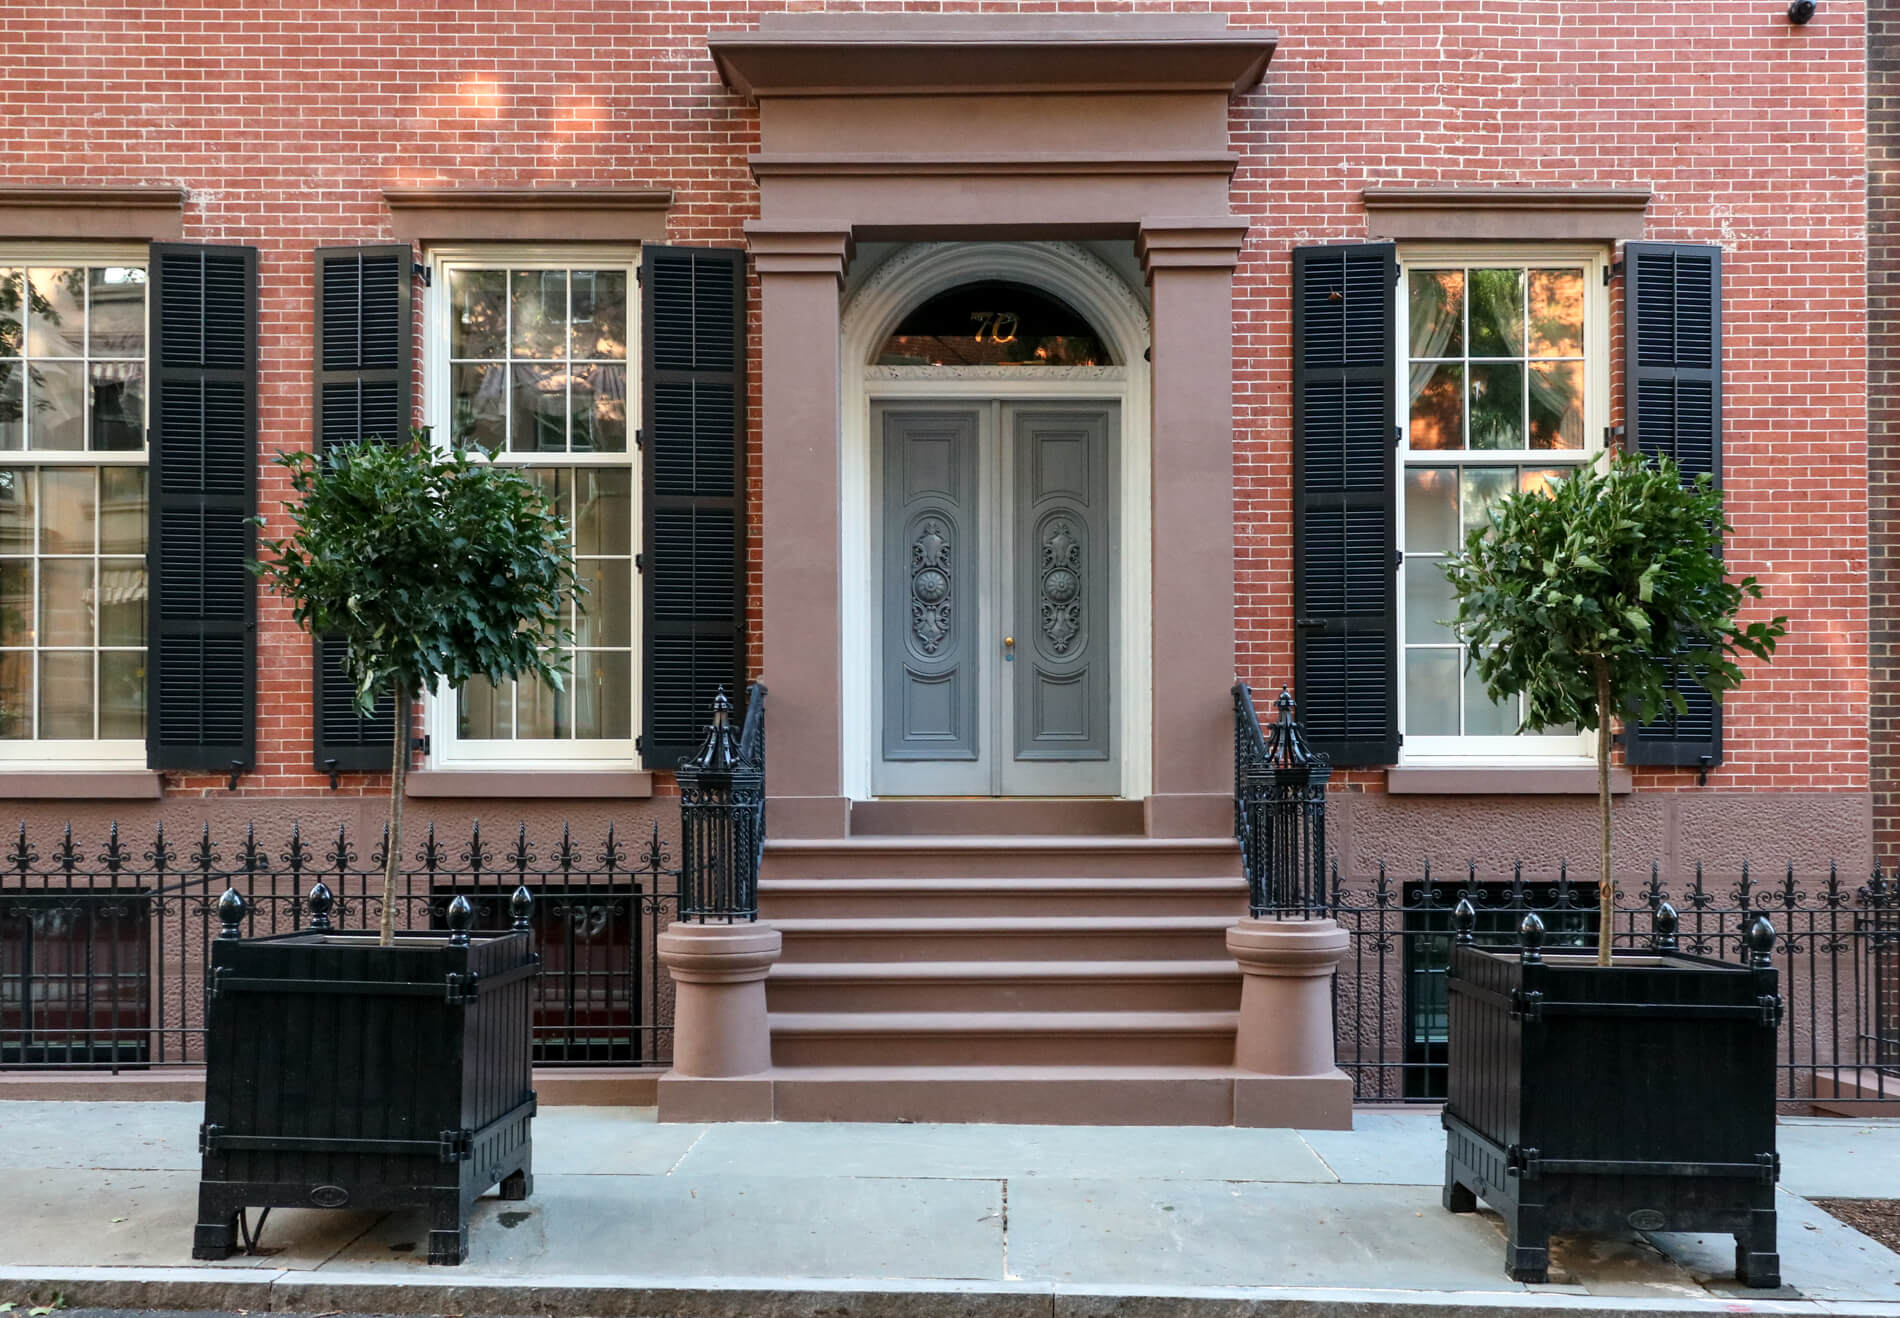 brooklyn-heights-architecture-70-willow-street-truman-capote-1